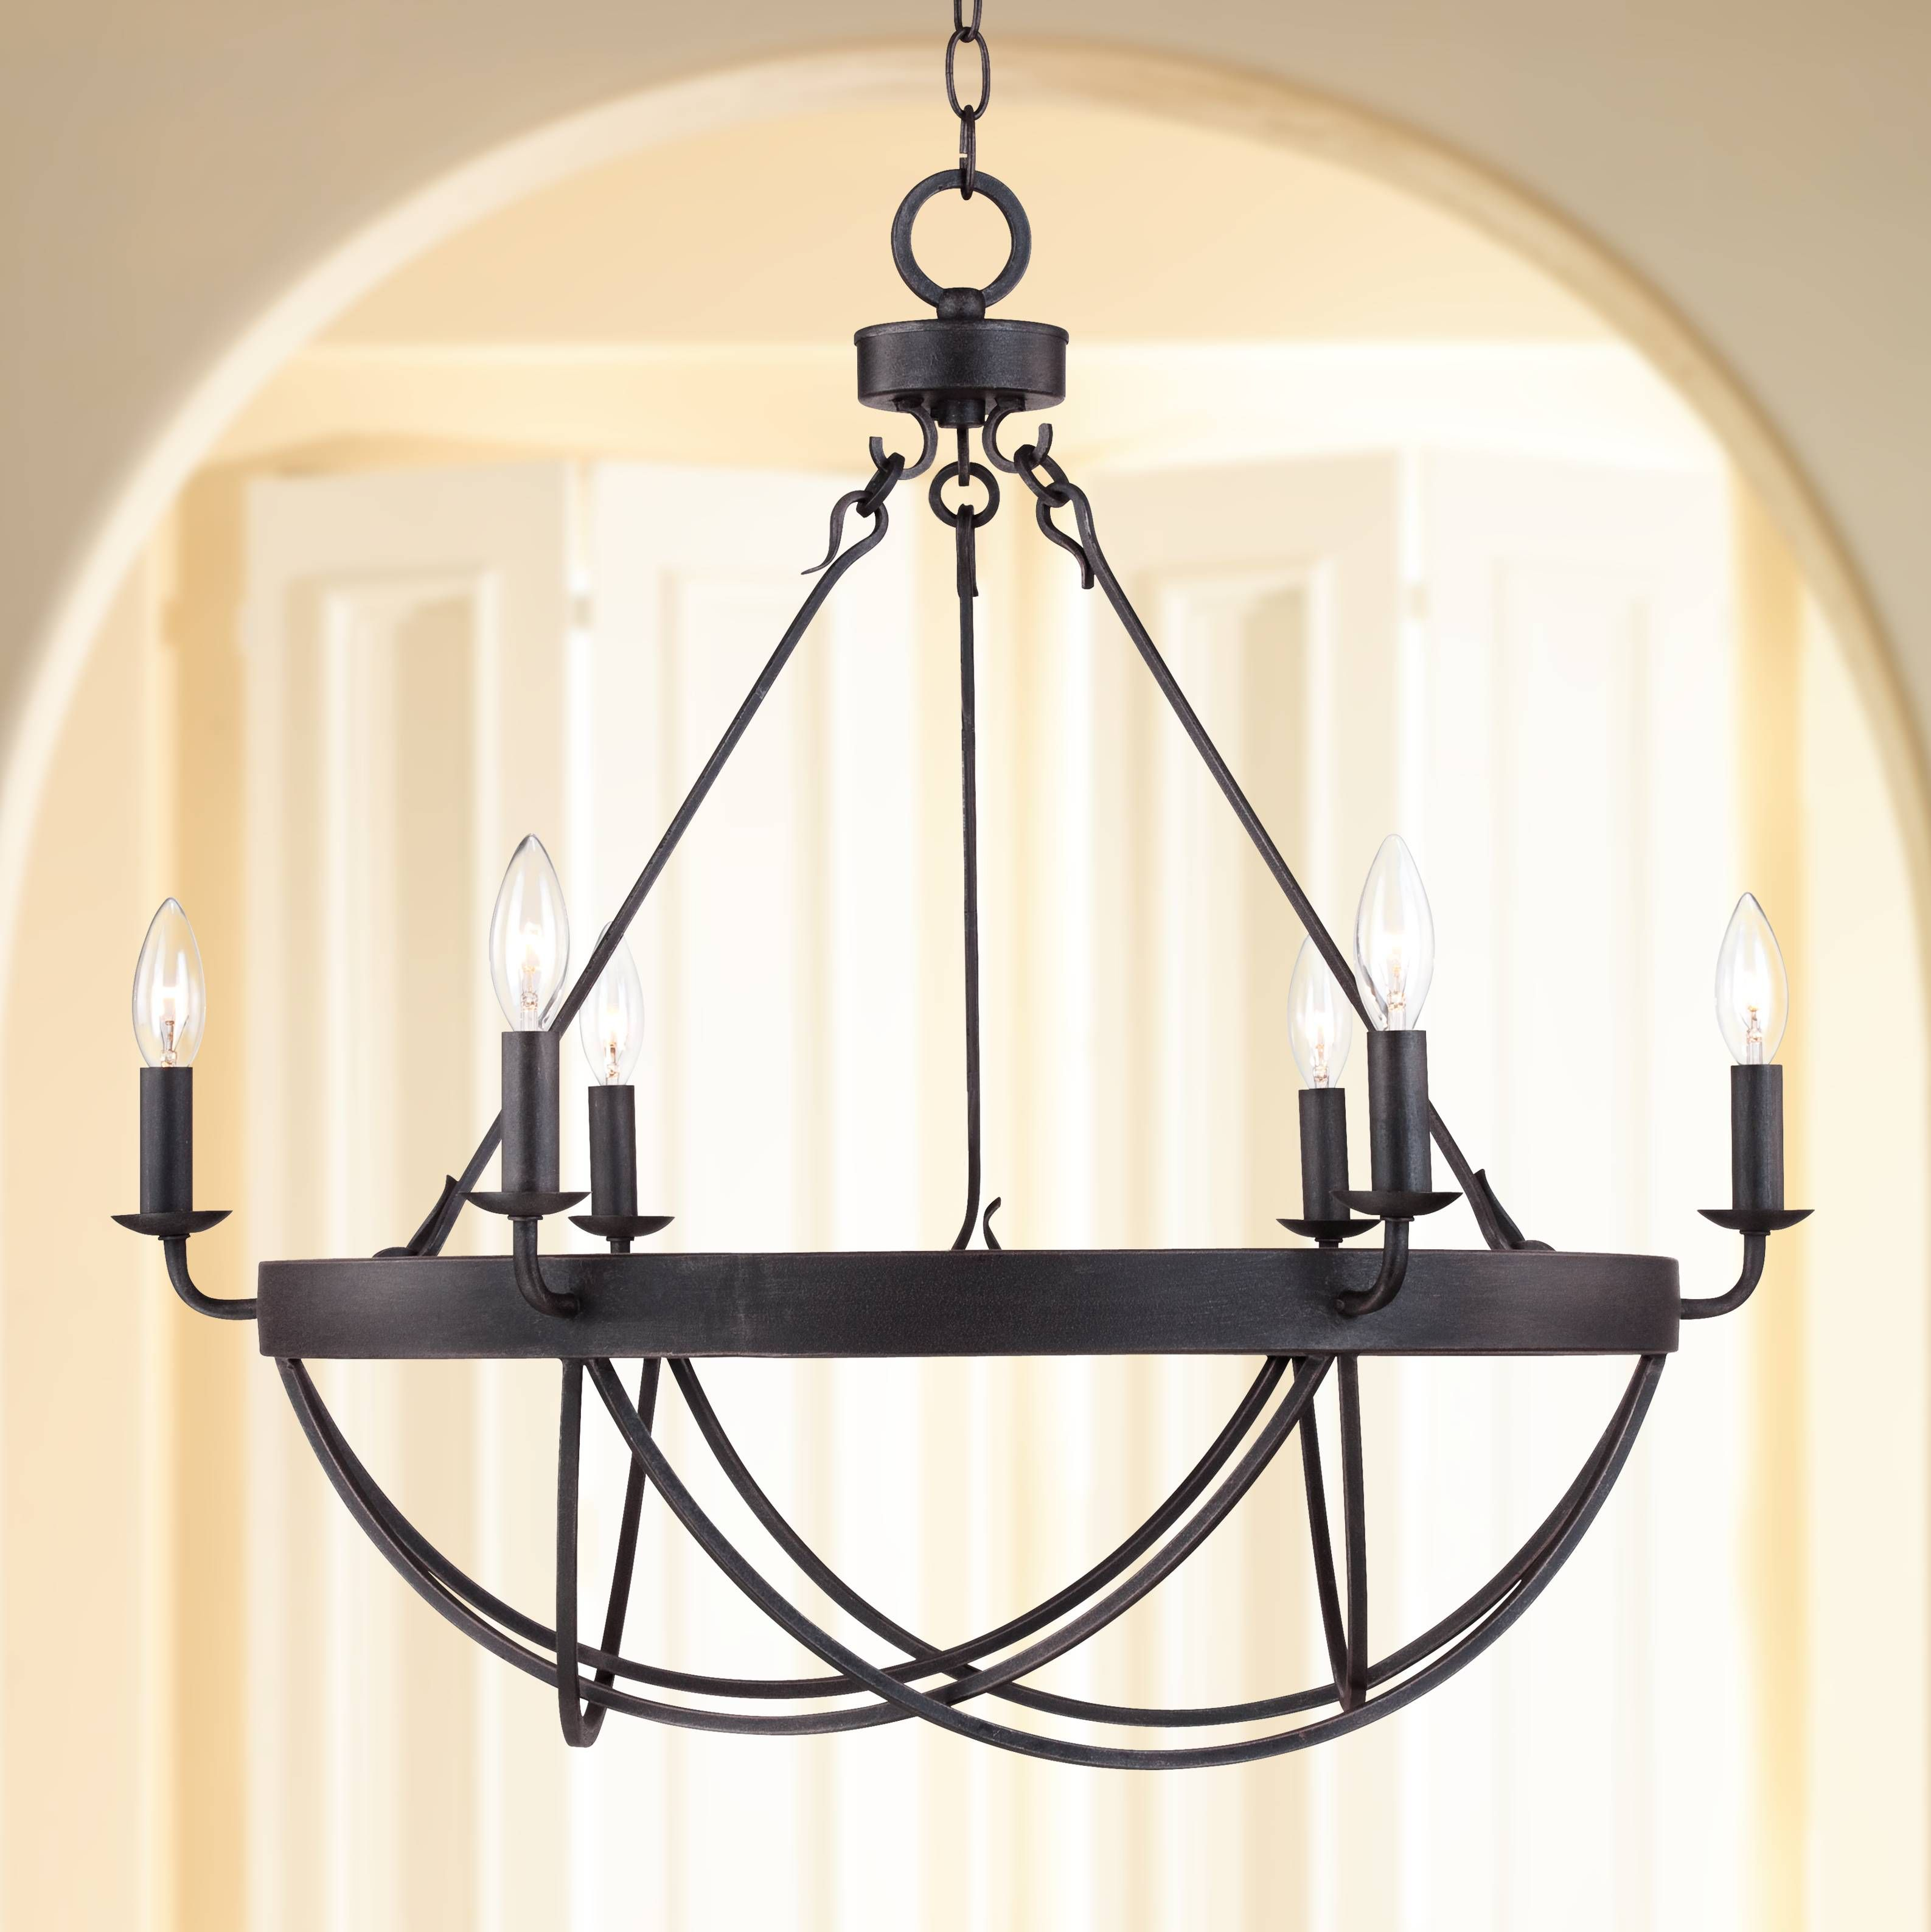 "Lyster Square 28"" Wide Oil Rubbed Bronze Chandelier"